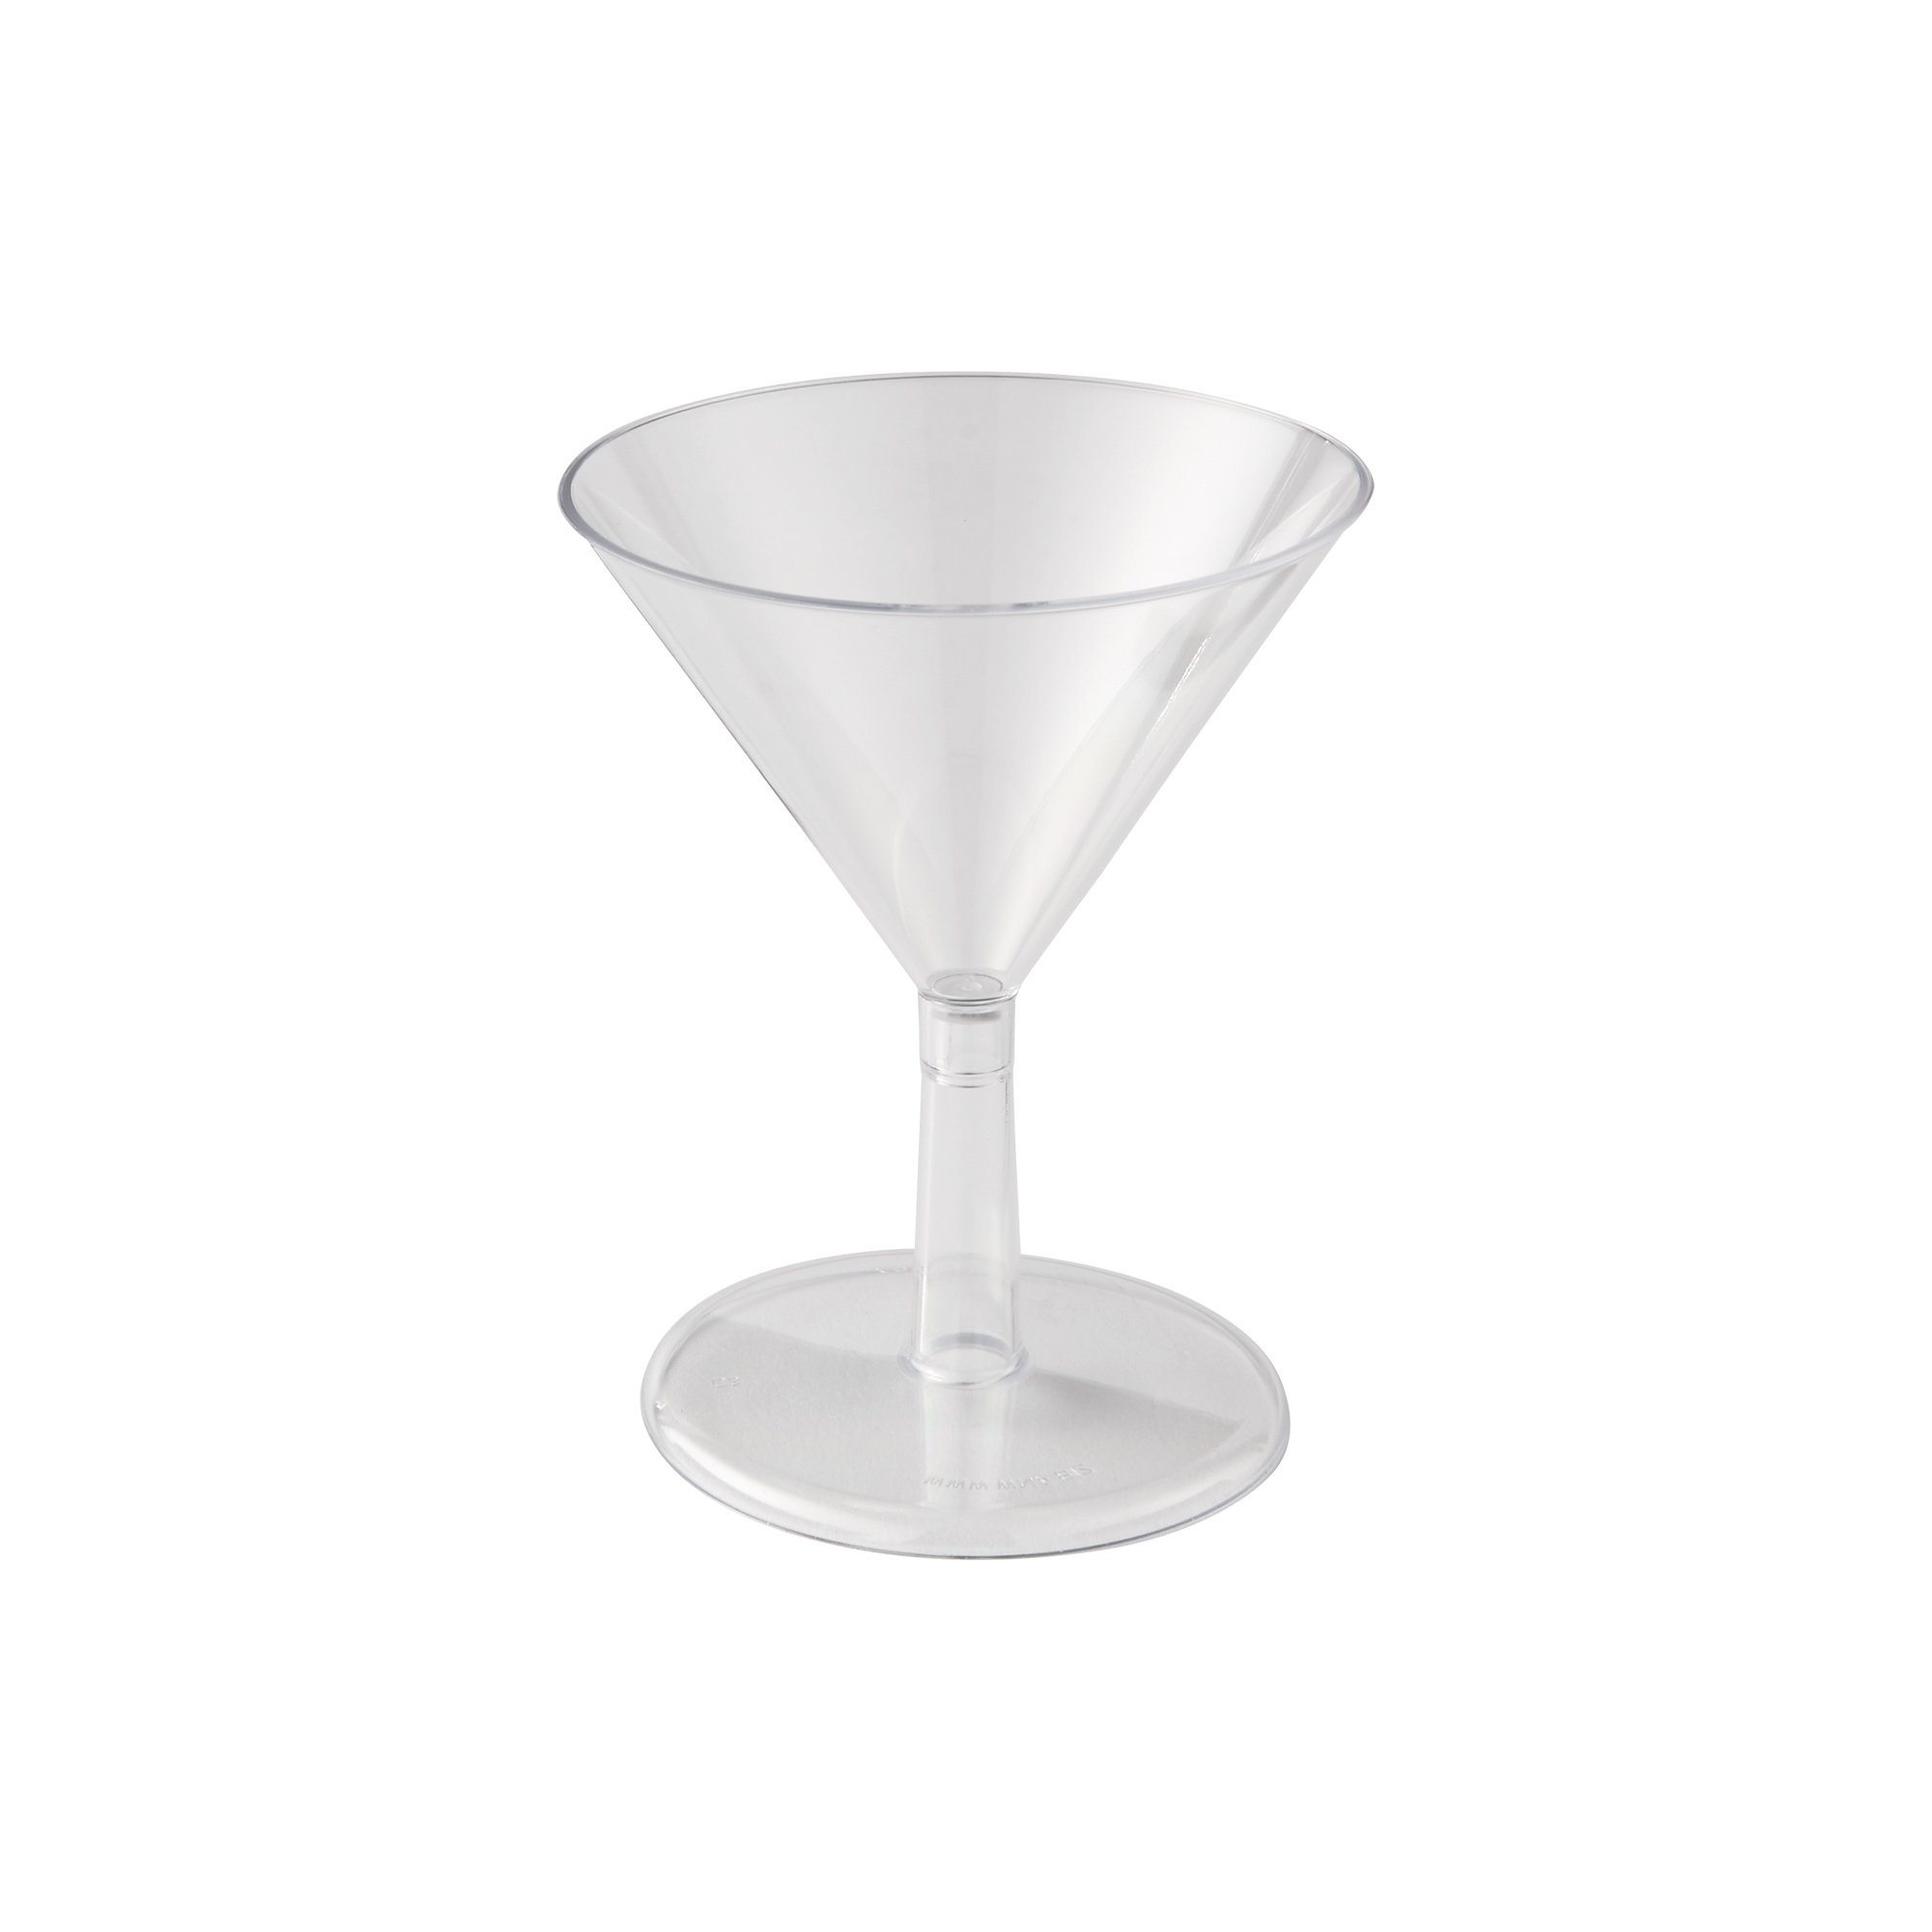 WNA Petites 24 Count Plastic Martini Glasses, Clear, 2 oz by WNA